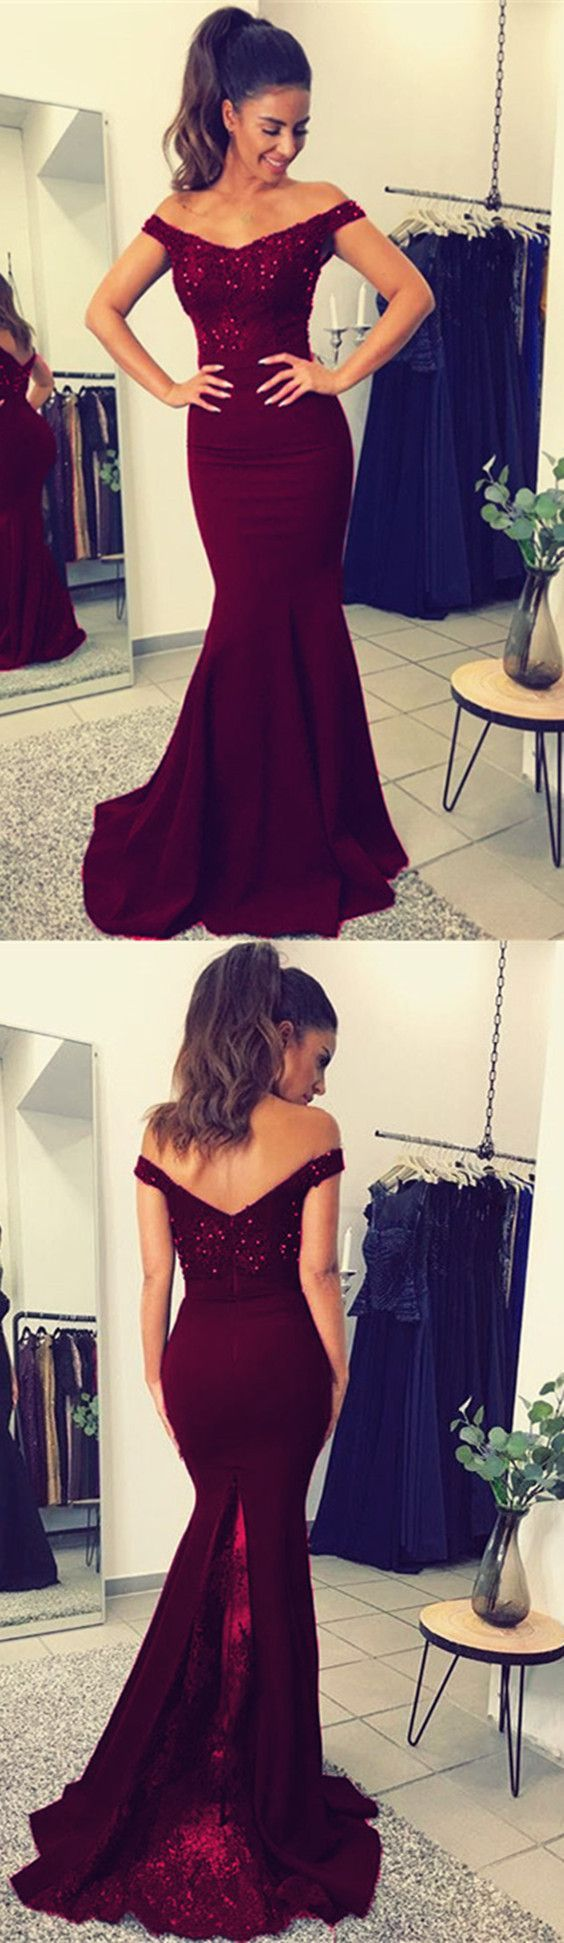 Burgundy off shoulder lace vneck long mermaid prom dress beaded